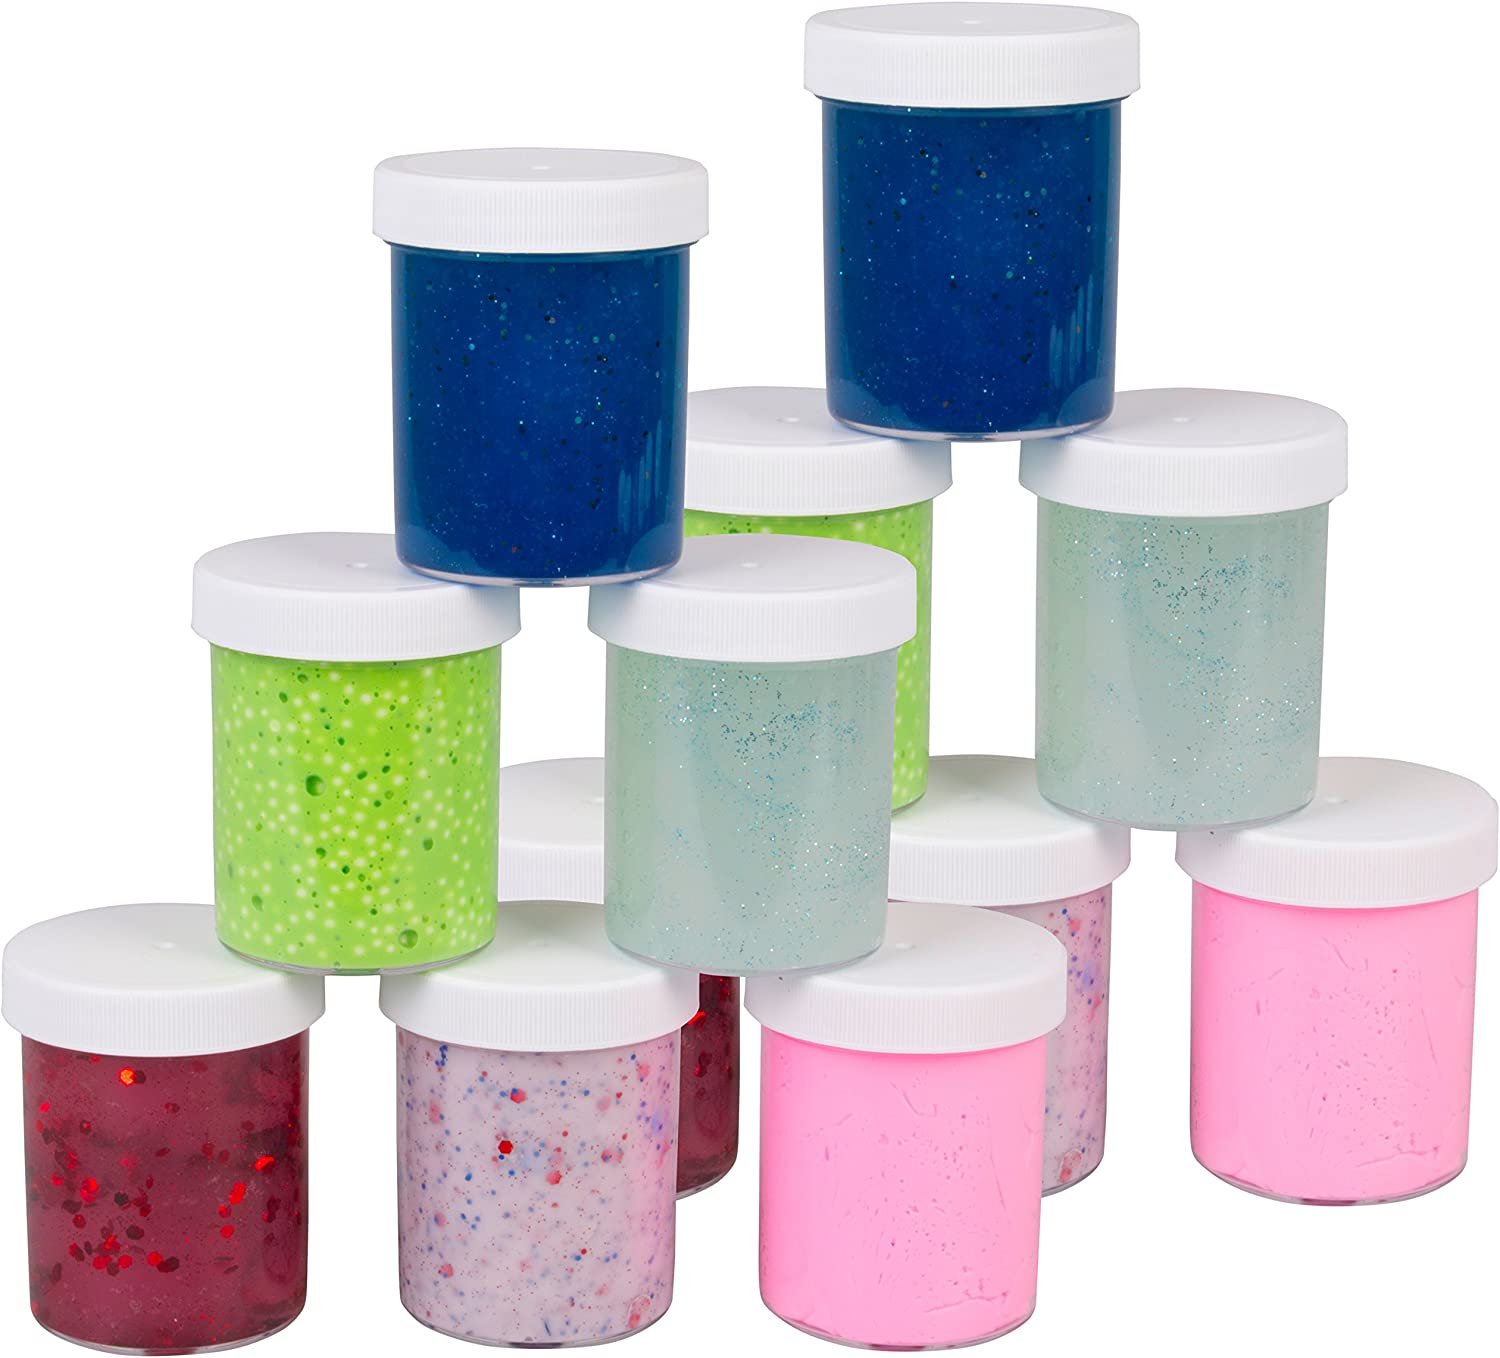 4oz, 12 pk, White Cap Maddie Raes Slime Storage Jars 4oz Clear Containers for All Your Glue Putty Making